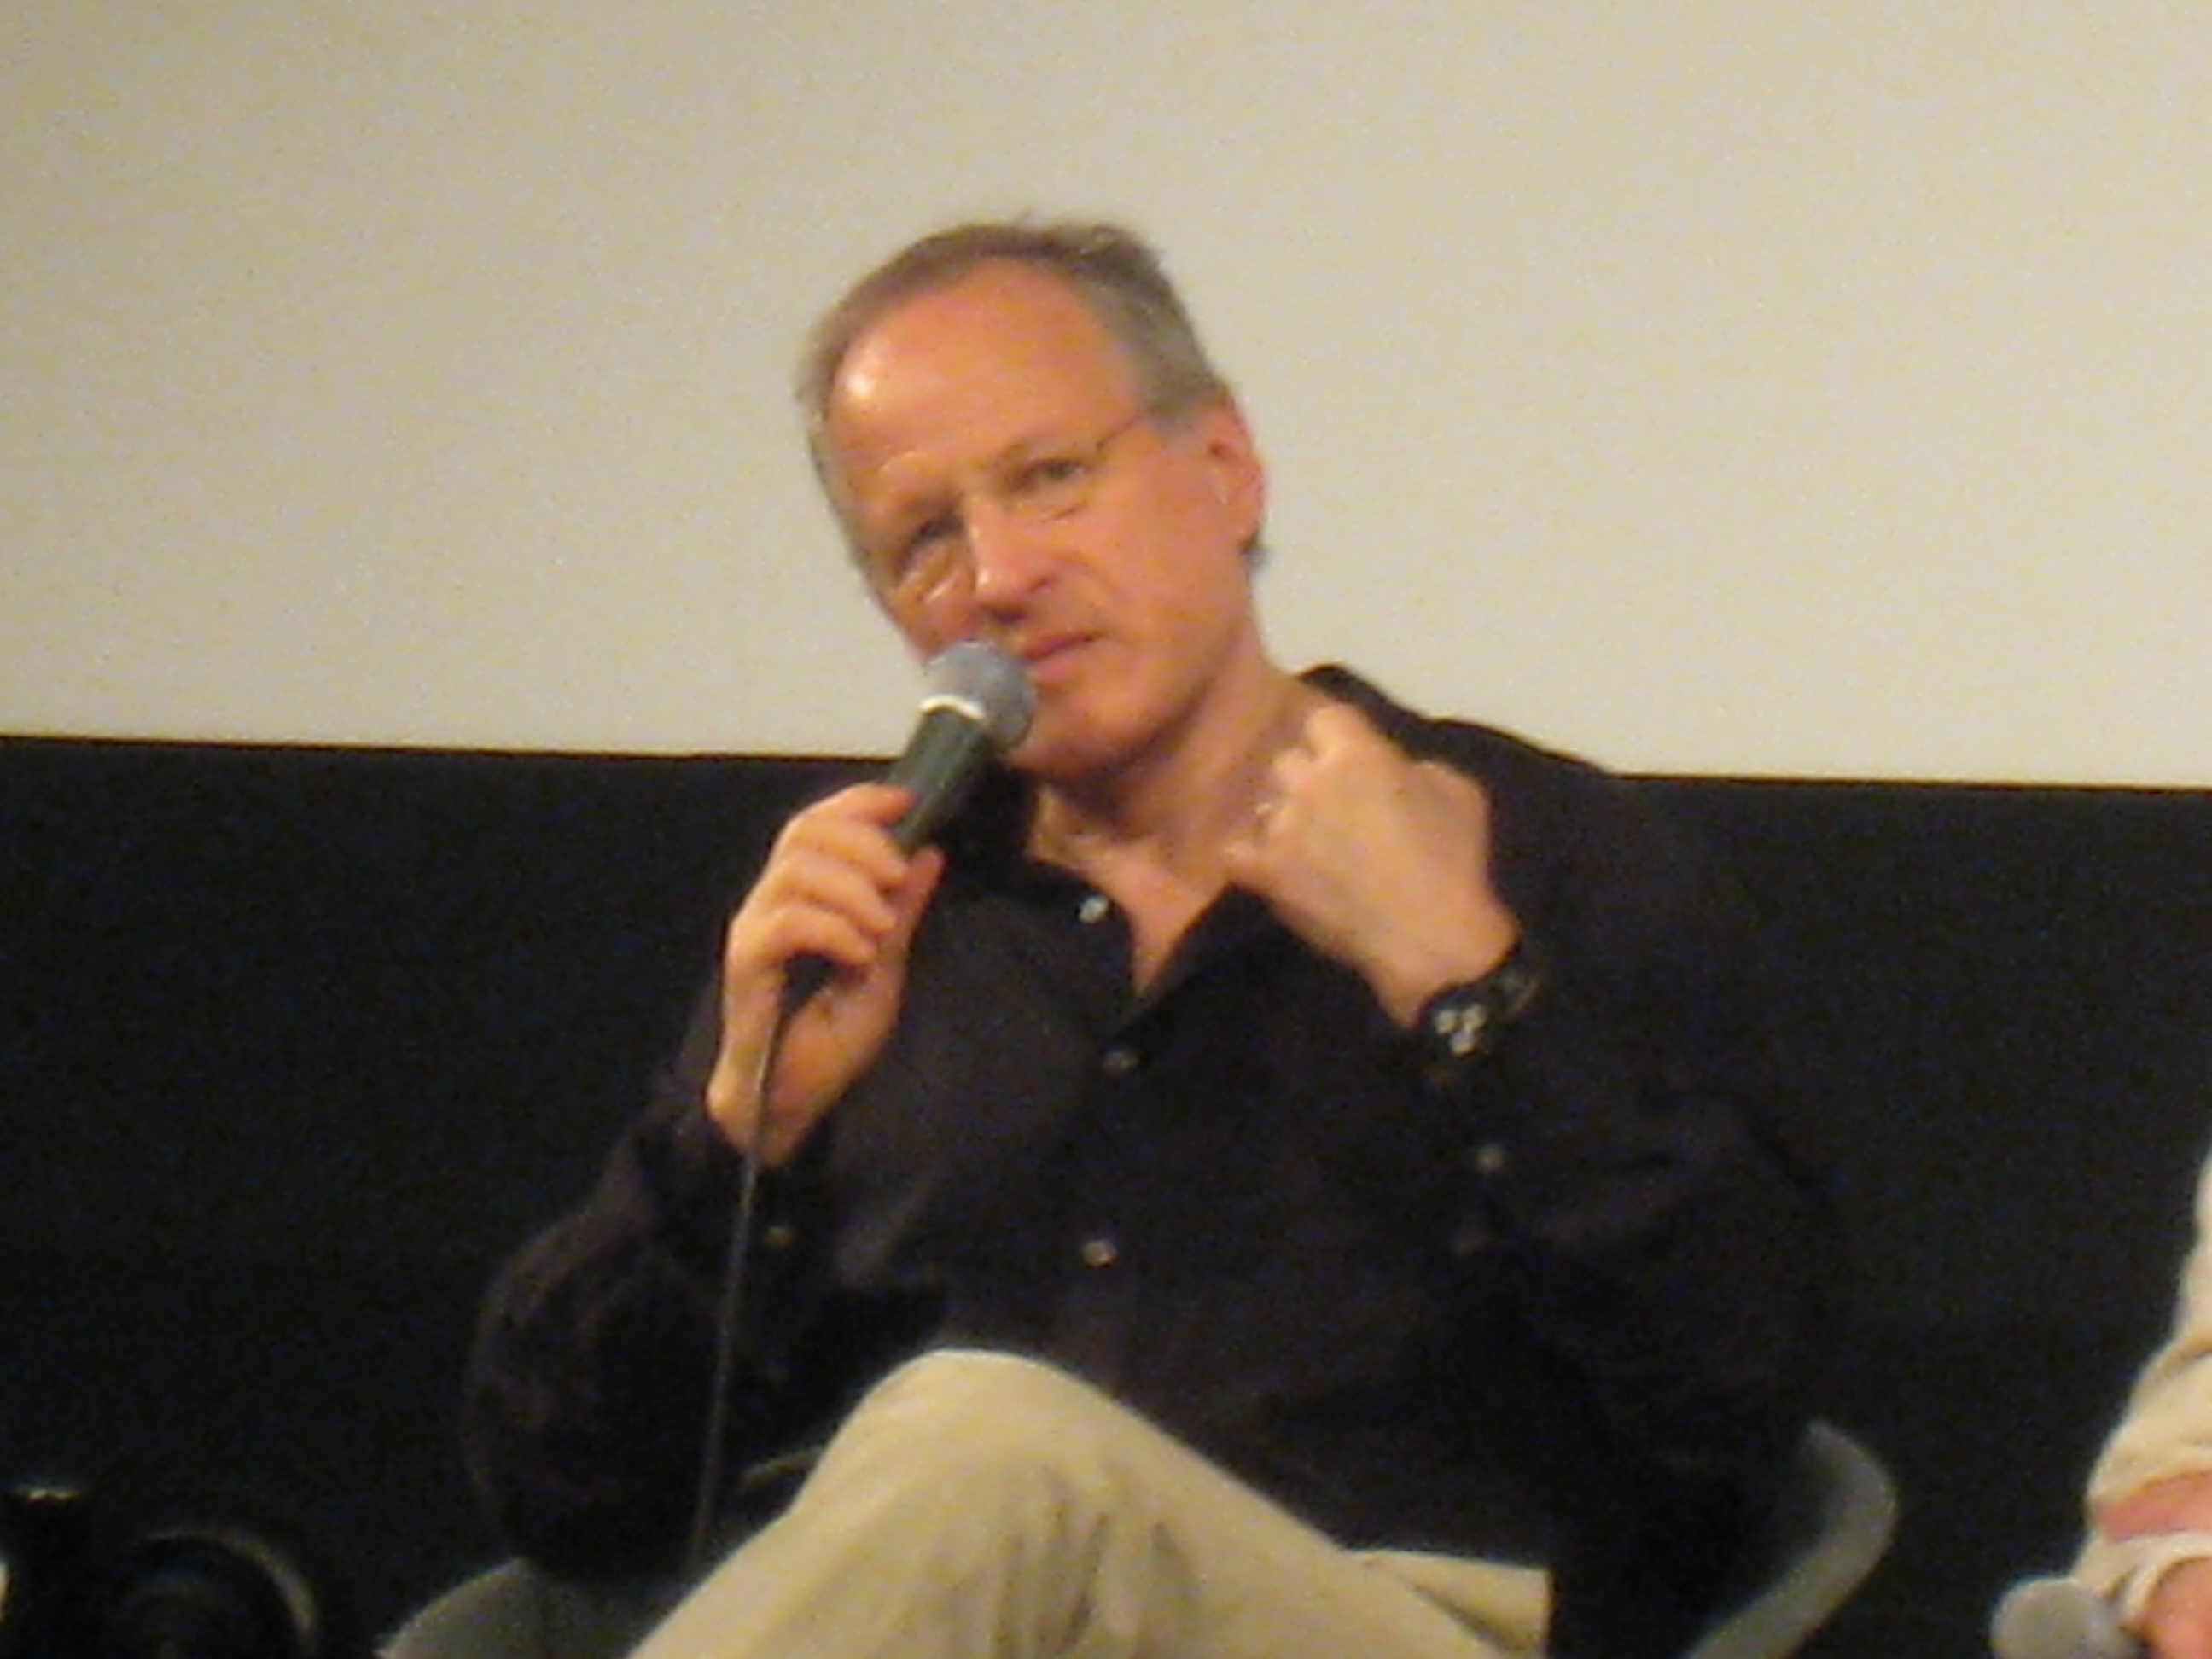 michael mann cincinnatimichael mann films, michael mann heat, michael mann movie, michael mann cincinnati, michael mann sociology, michael mann tribute, michael mann filmography, michael mann imdb, michael mann net worth, michael mann wiki, michael mann pdf, michael mann new movie, michael mann jamie foxx, michael mann power, michael mann productions, michael mann johnny depp, michael mann tony accardo, michael mann last of the mohicans, michael mann talent agency, michael mann heat commentary